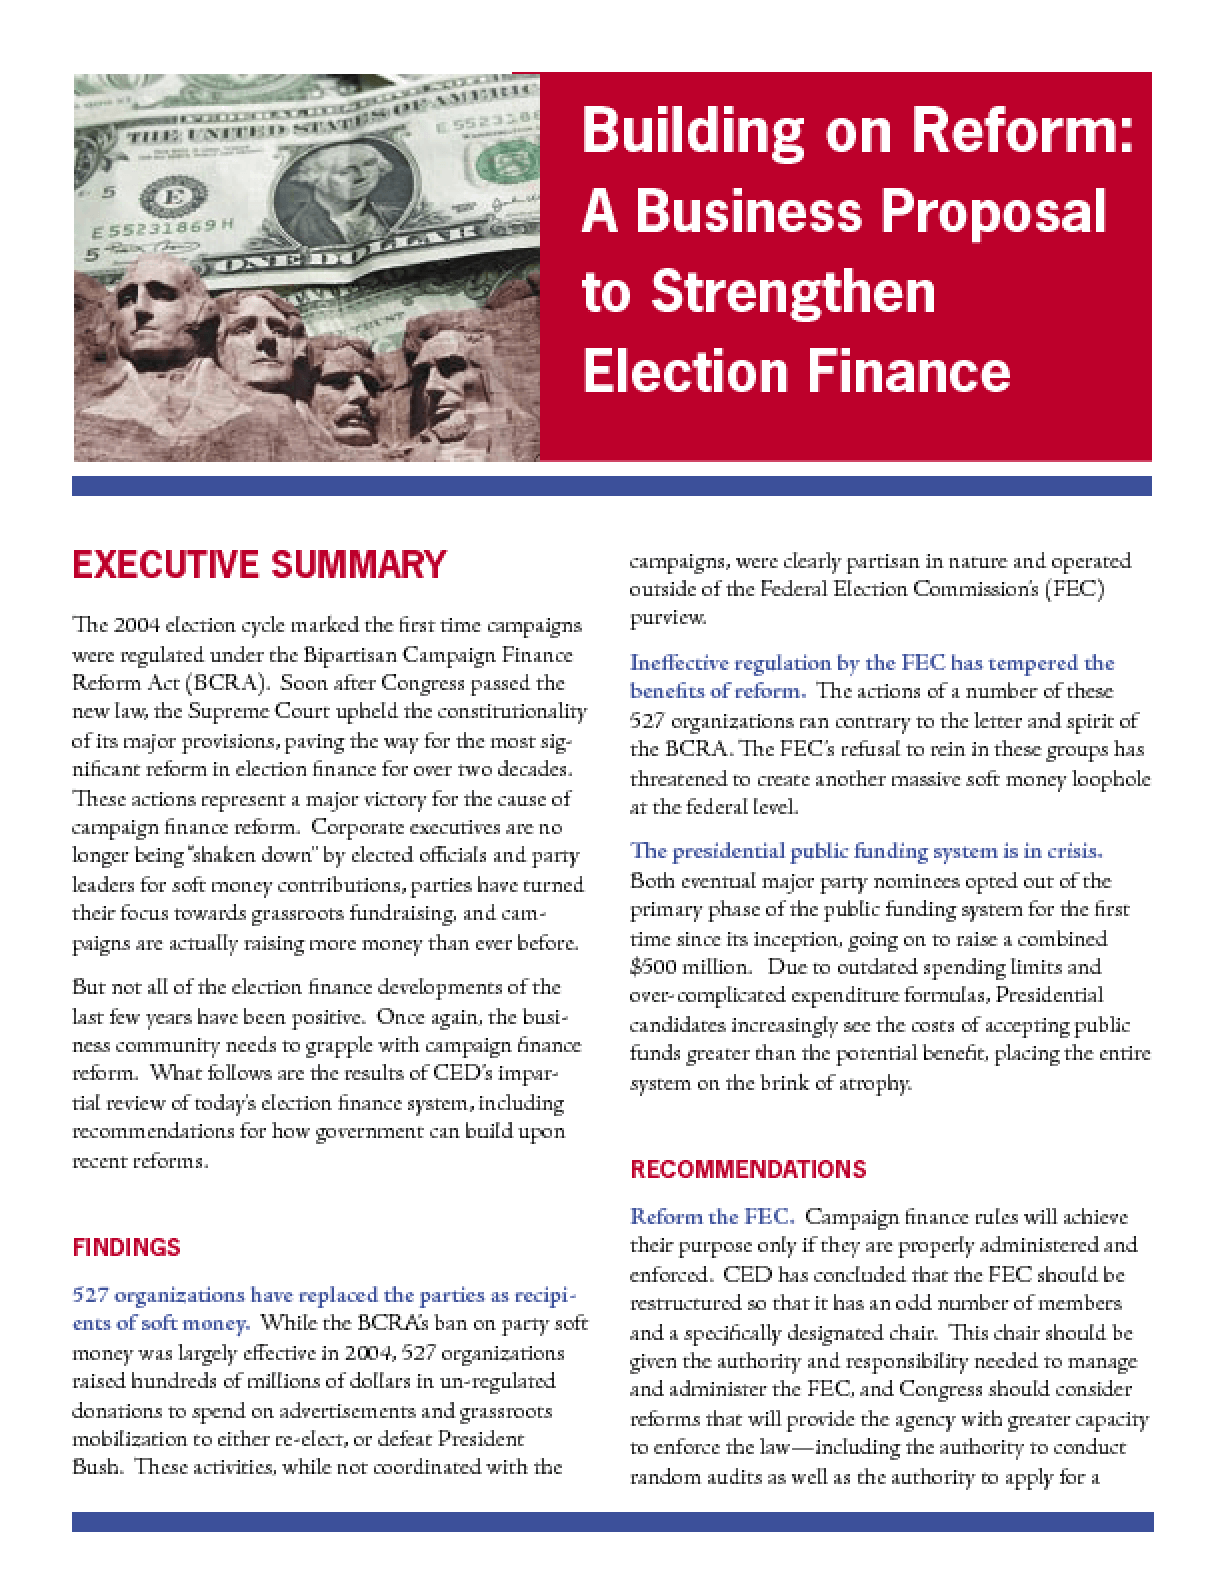 Building on Reform: A Business Proposal to Strengthen Campaign Finance - Executive Summary